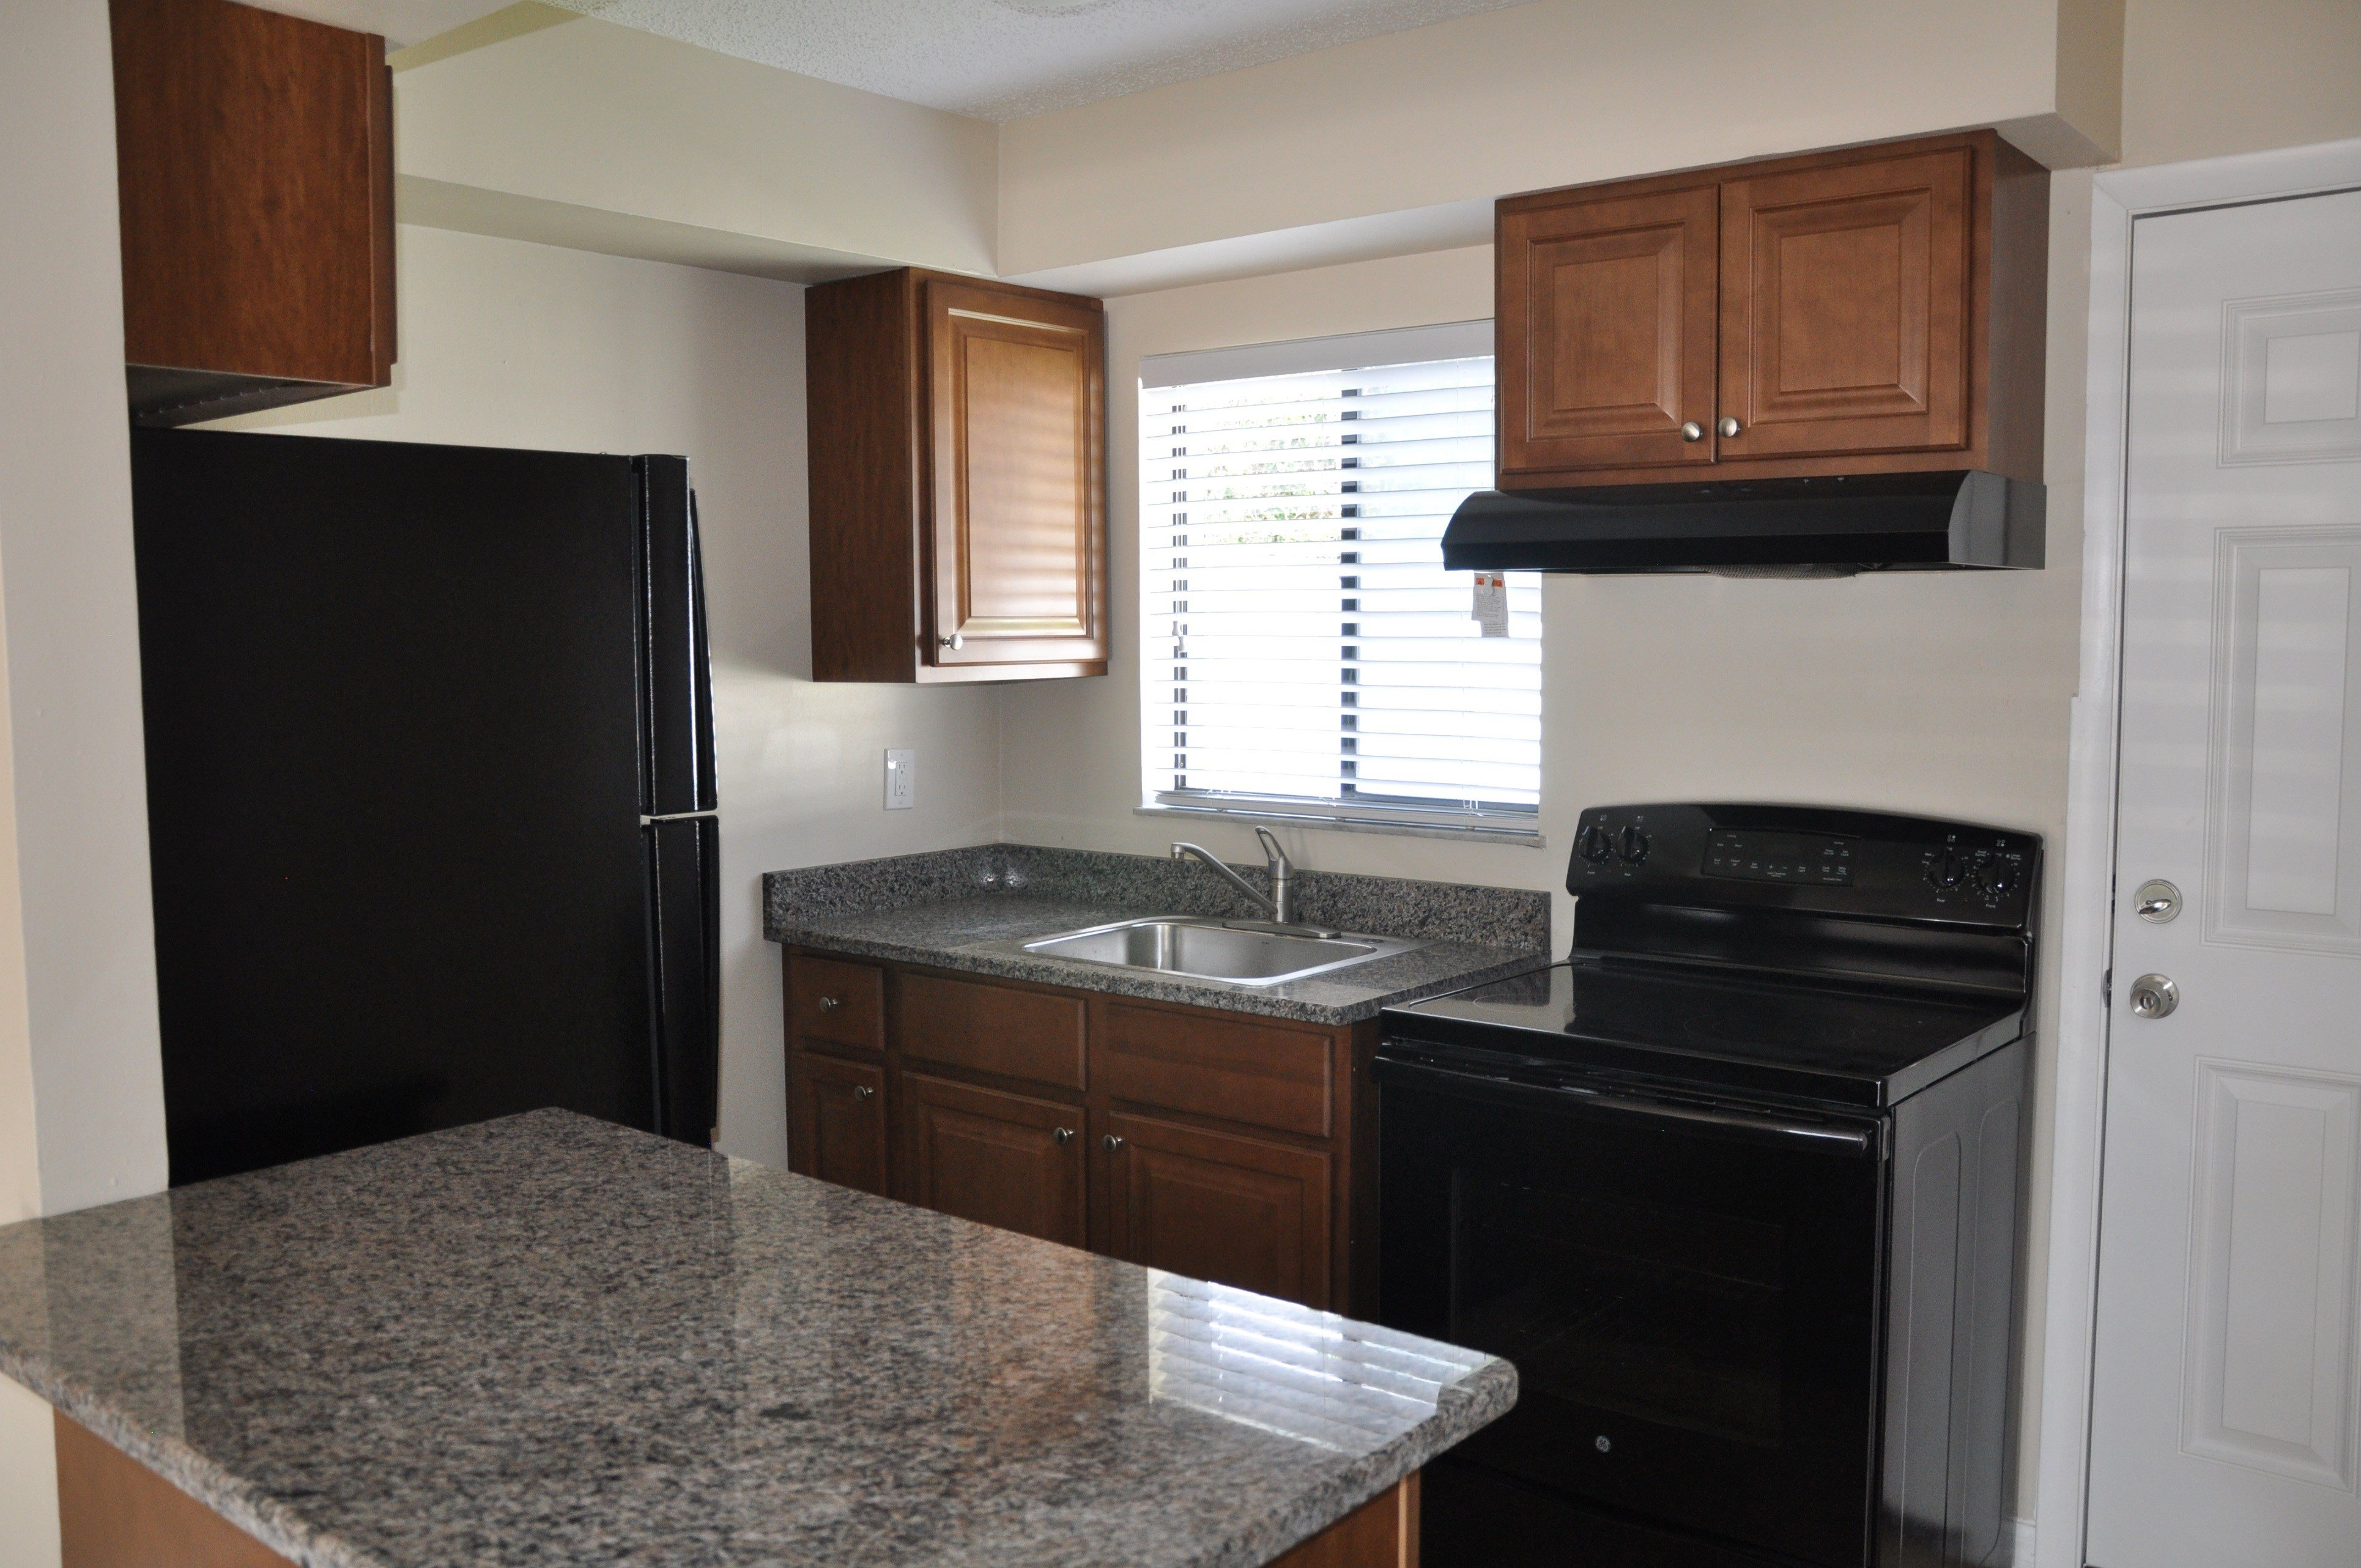 Best Section 8 Housing And Apartments For Rent In Dade City With Pictures